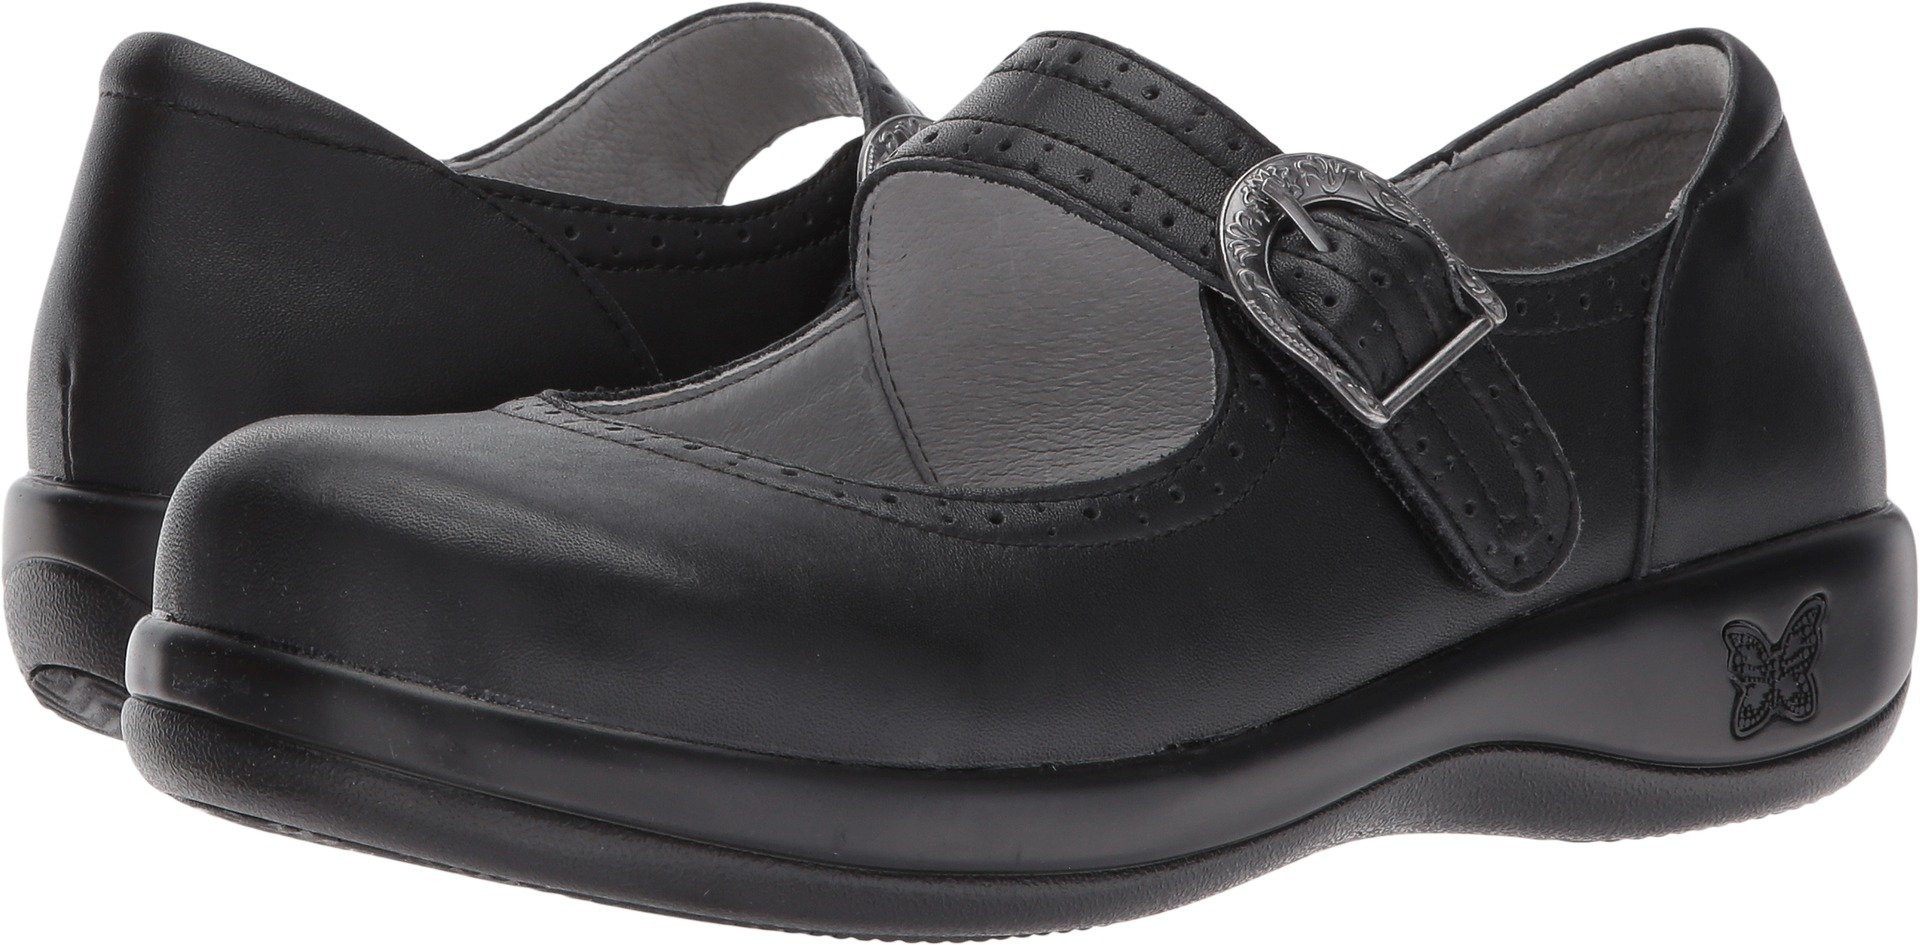 Alegria Womens Kourtney Mary Jane Black Nappa Size 41 EU (10.5-11 M US Women)